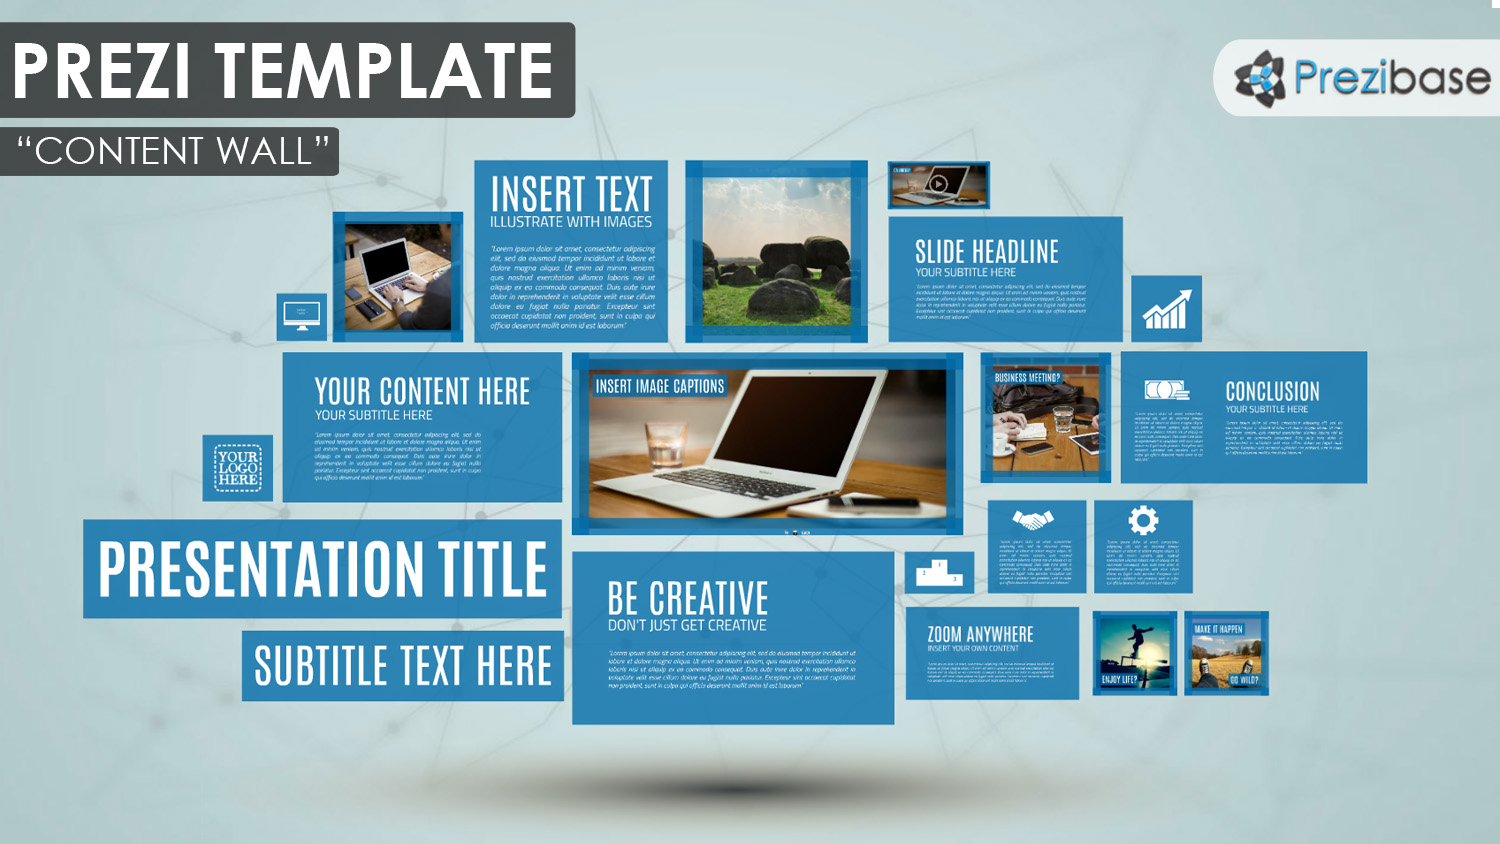 simple presentation topic business prezi templates prezibase  business prezi templates prezibase simple business company frames prezi template presentation